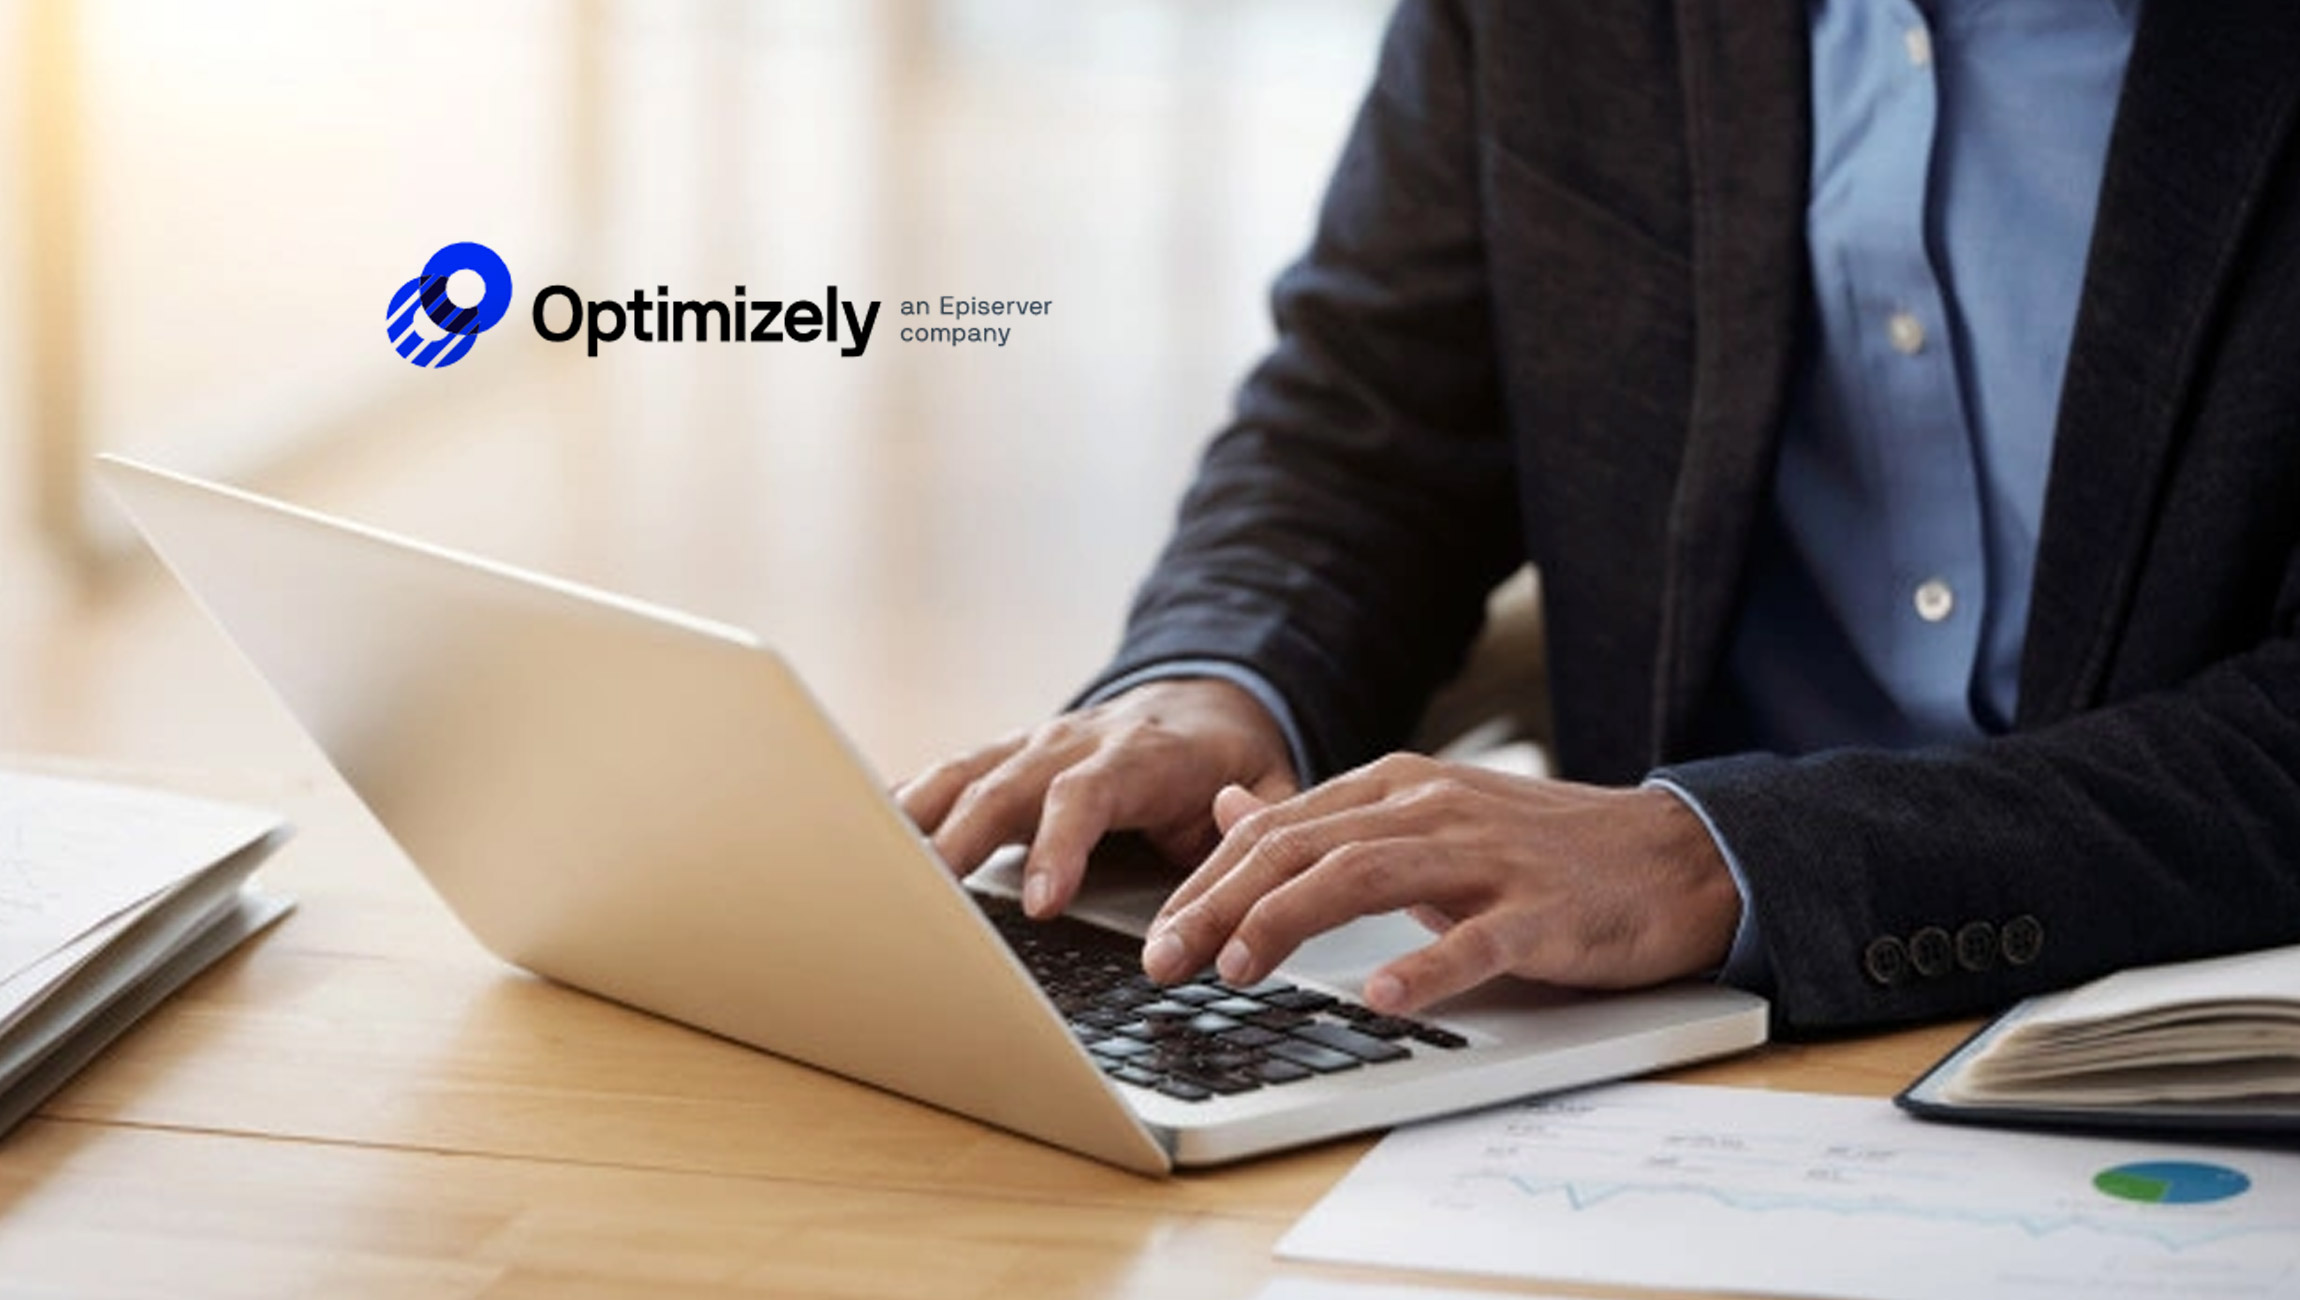 Optimizely Named A Leader In Agile Content Management Systems By Independent Research Firm